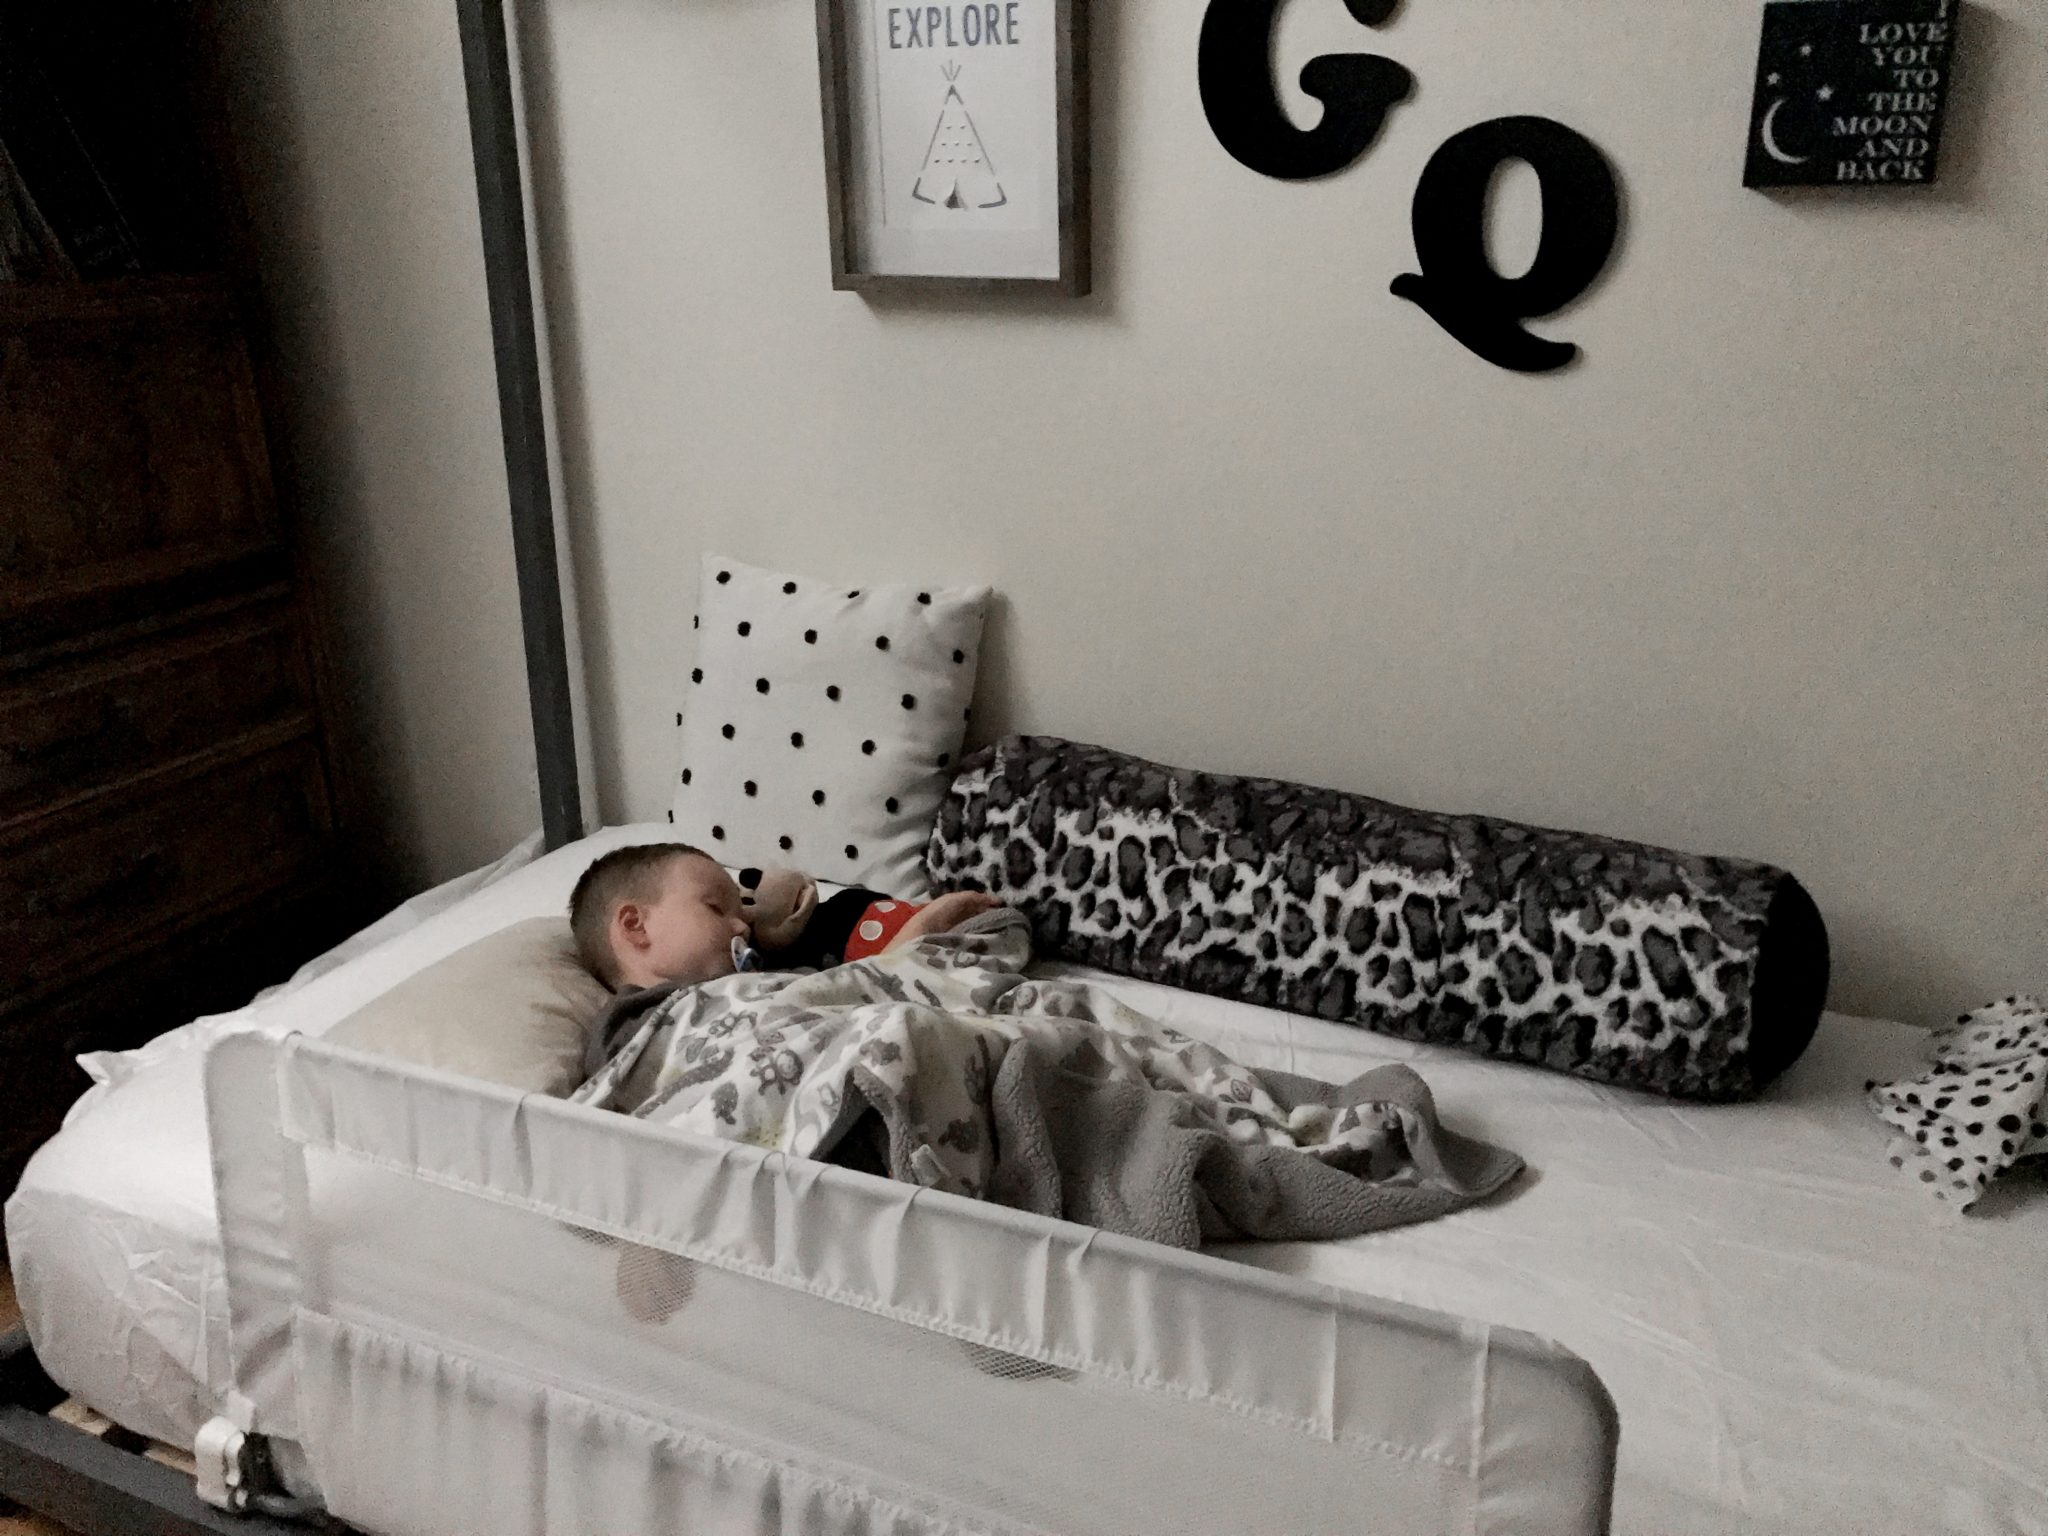 transitioned from crib, transitioning to toddler bed at 18 months, when to transition from toddler bed to twin bed, how to keep toddler in bed, transition to toddler bed supernanny, when do i convert crib to toddler bed, co sleeping to toddler bed, toddler climbing out of crib, toddler bed age limit